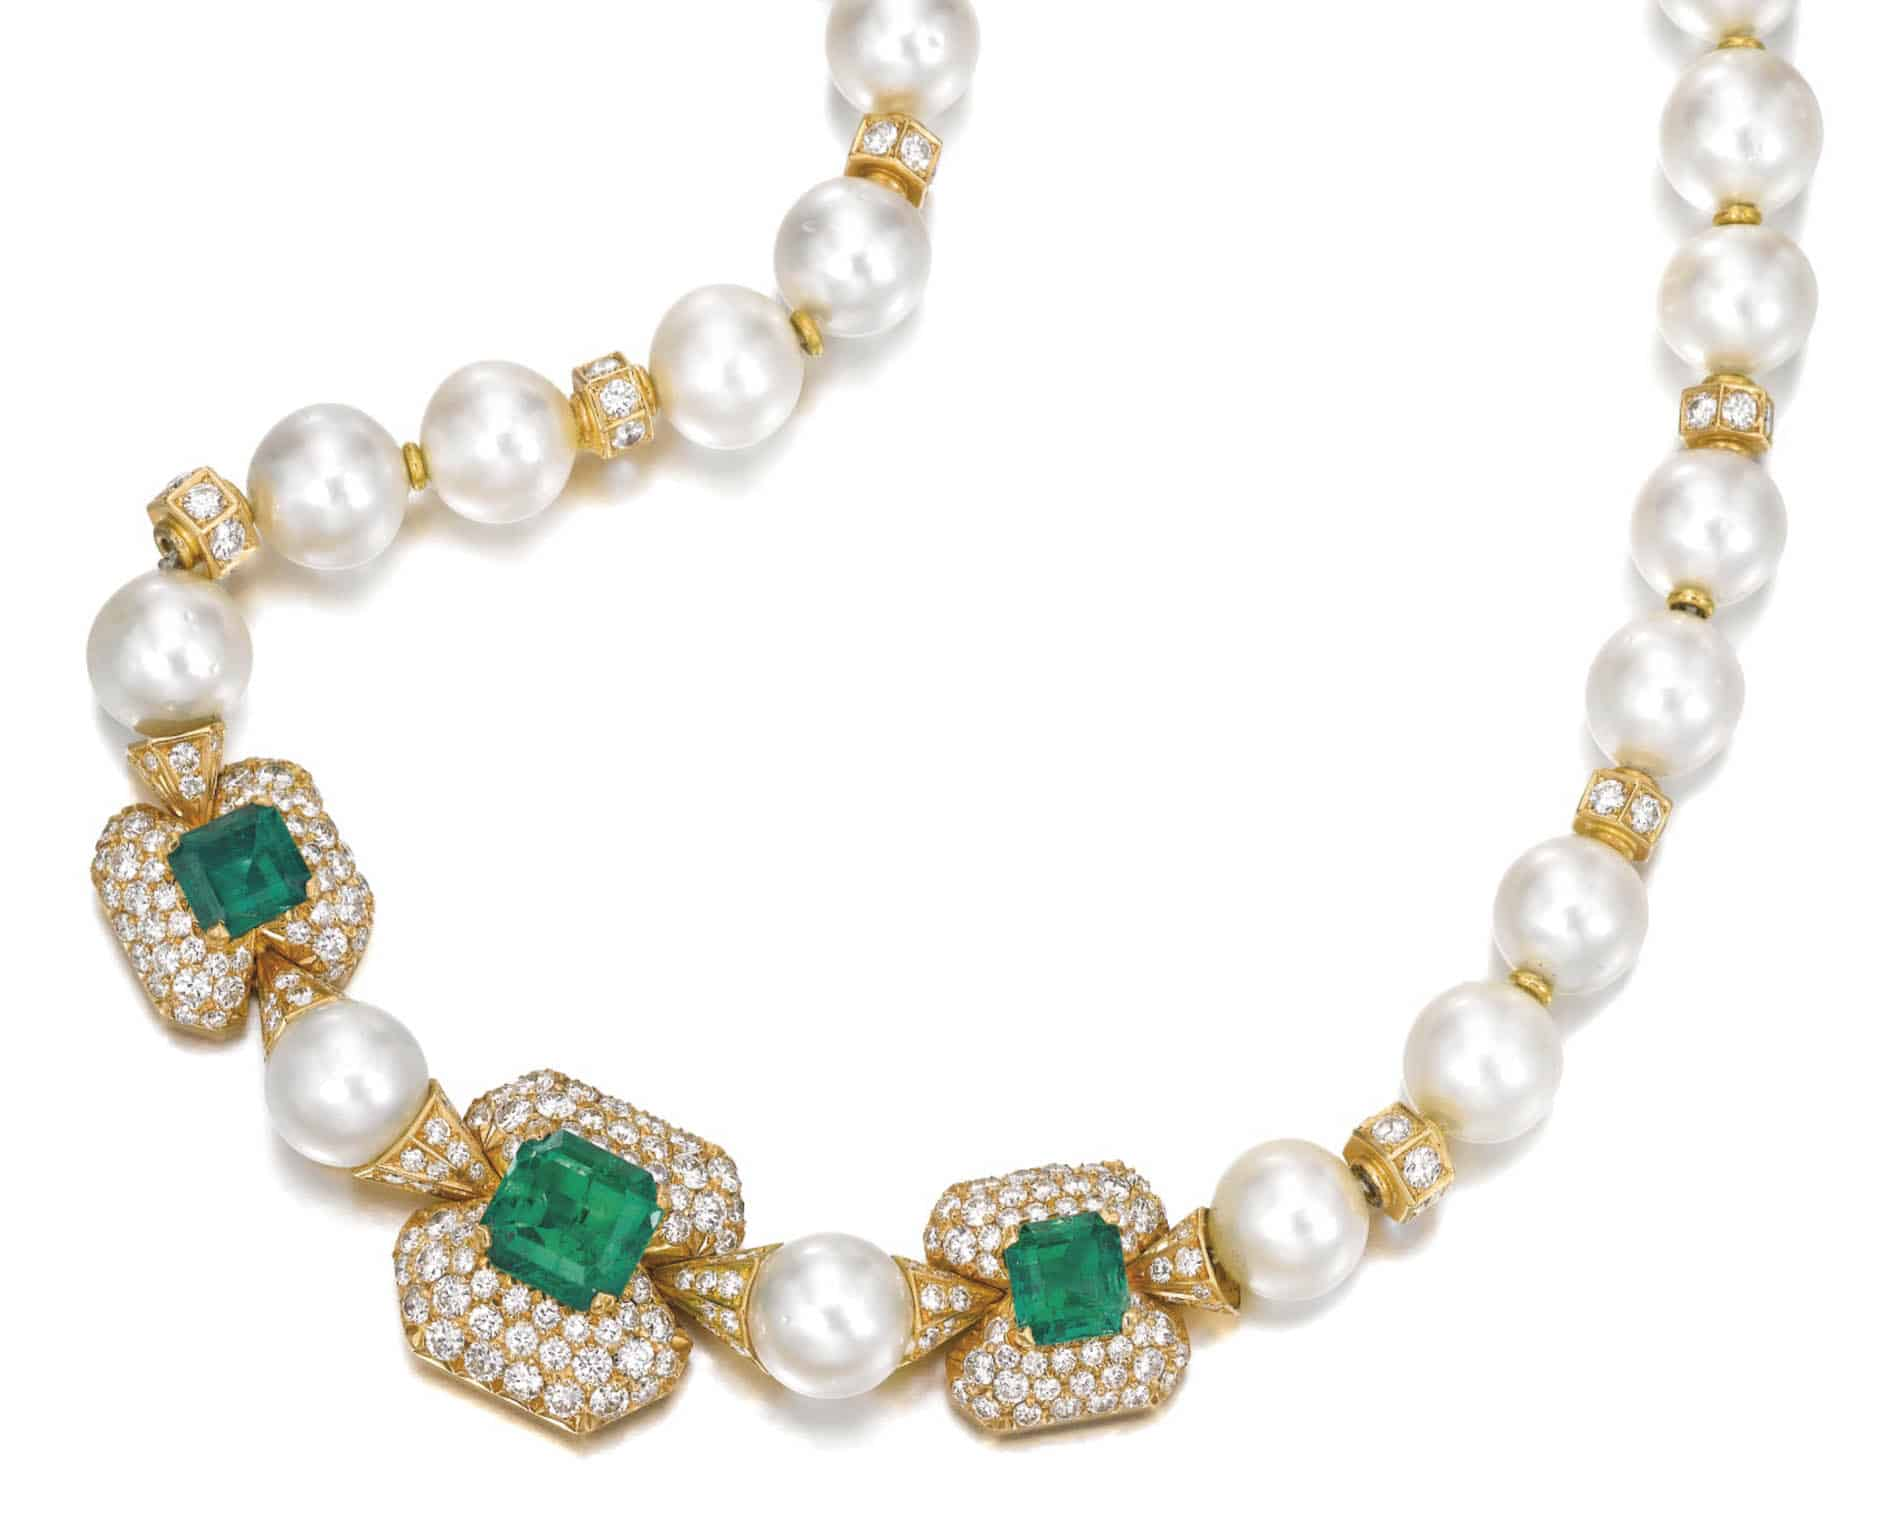 LOT 180 - EMERALD, CULTURED PEARL AND DIAMOND NECKLACE